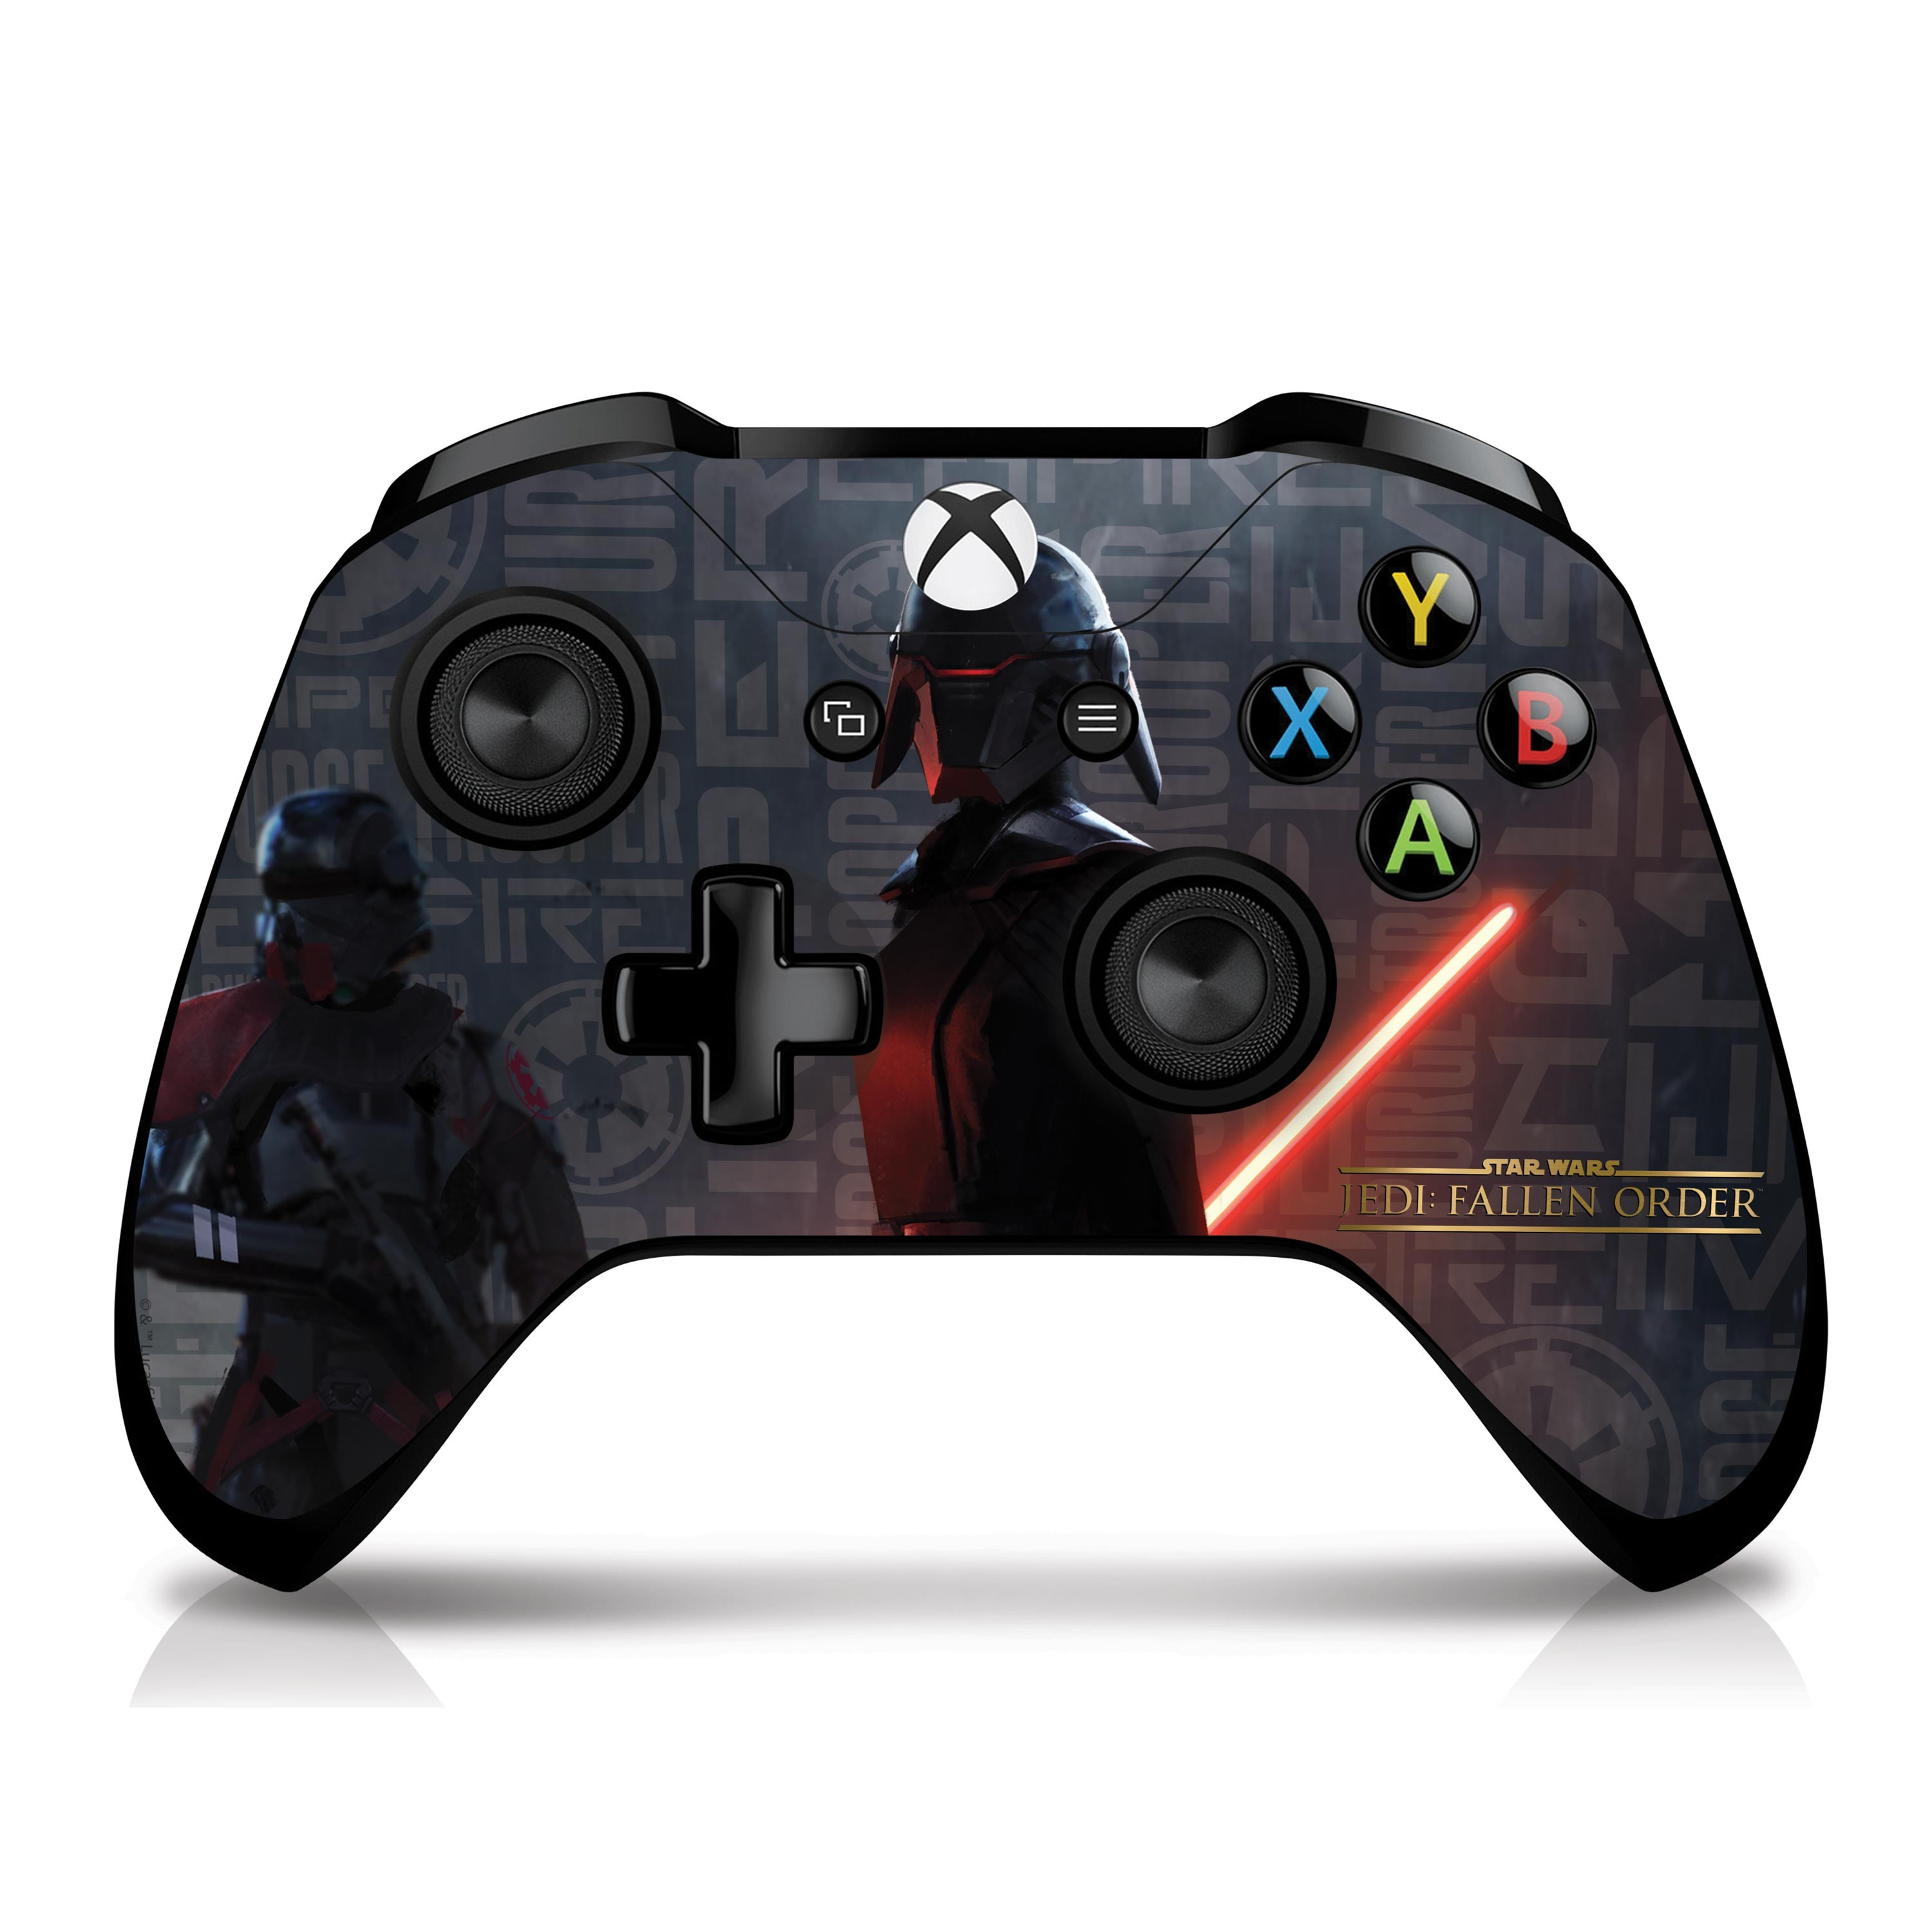 Star Wars Xbox One X Console and Controller Skin - Empire Scatter